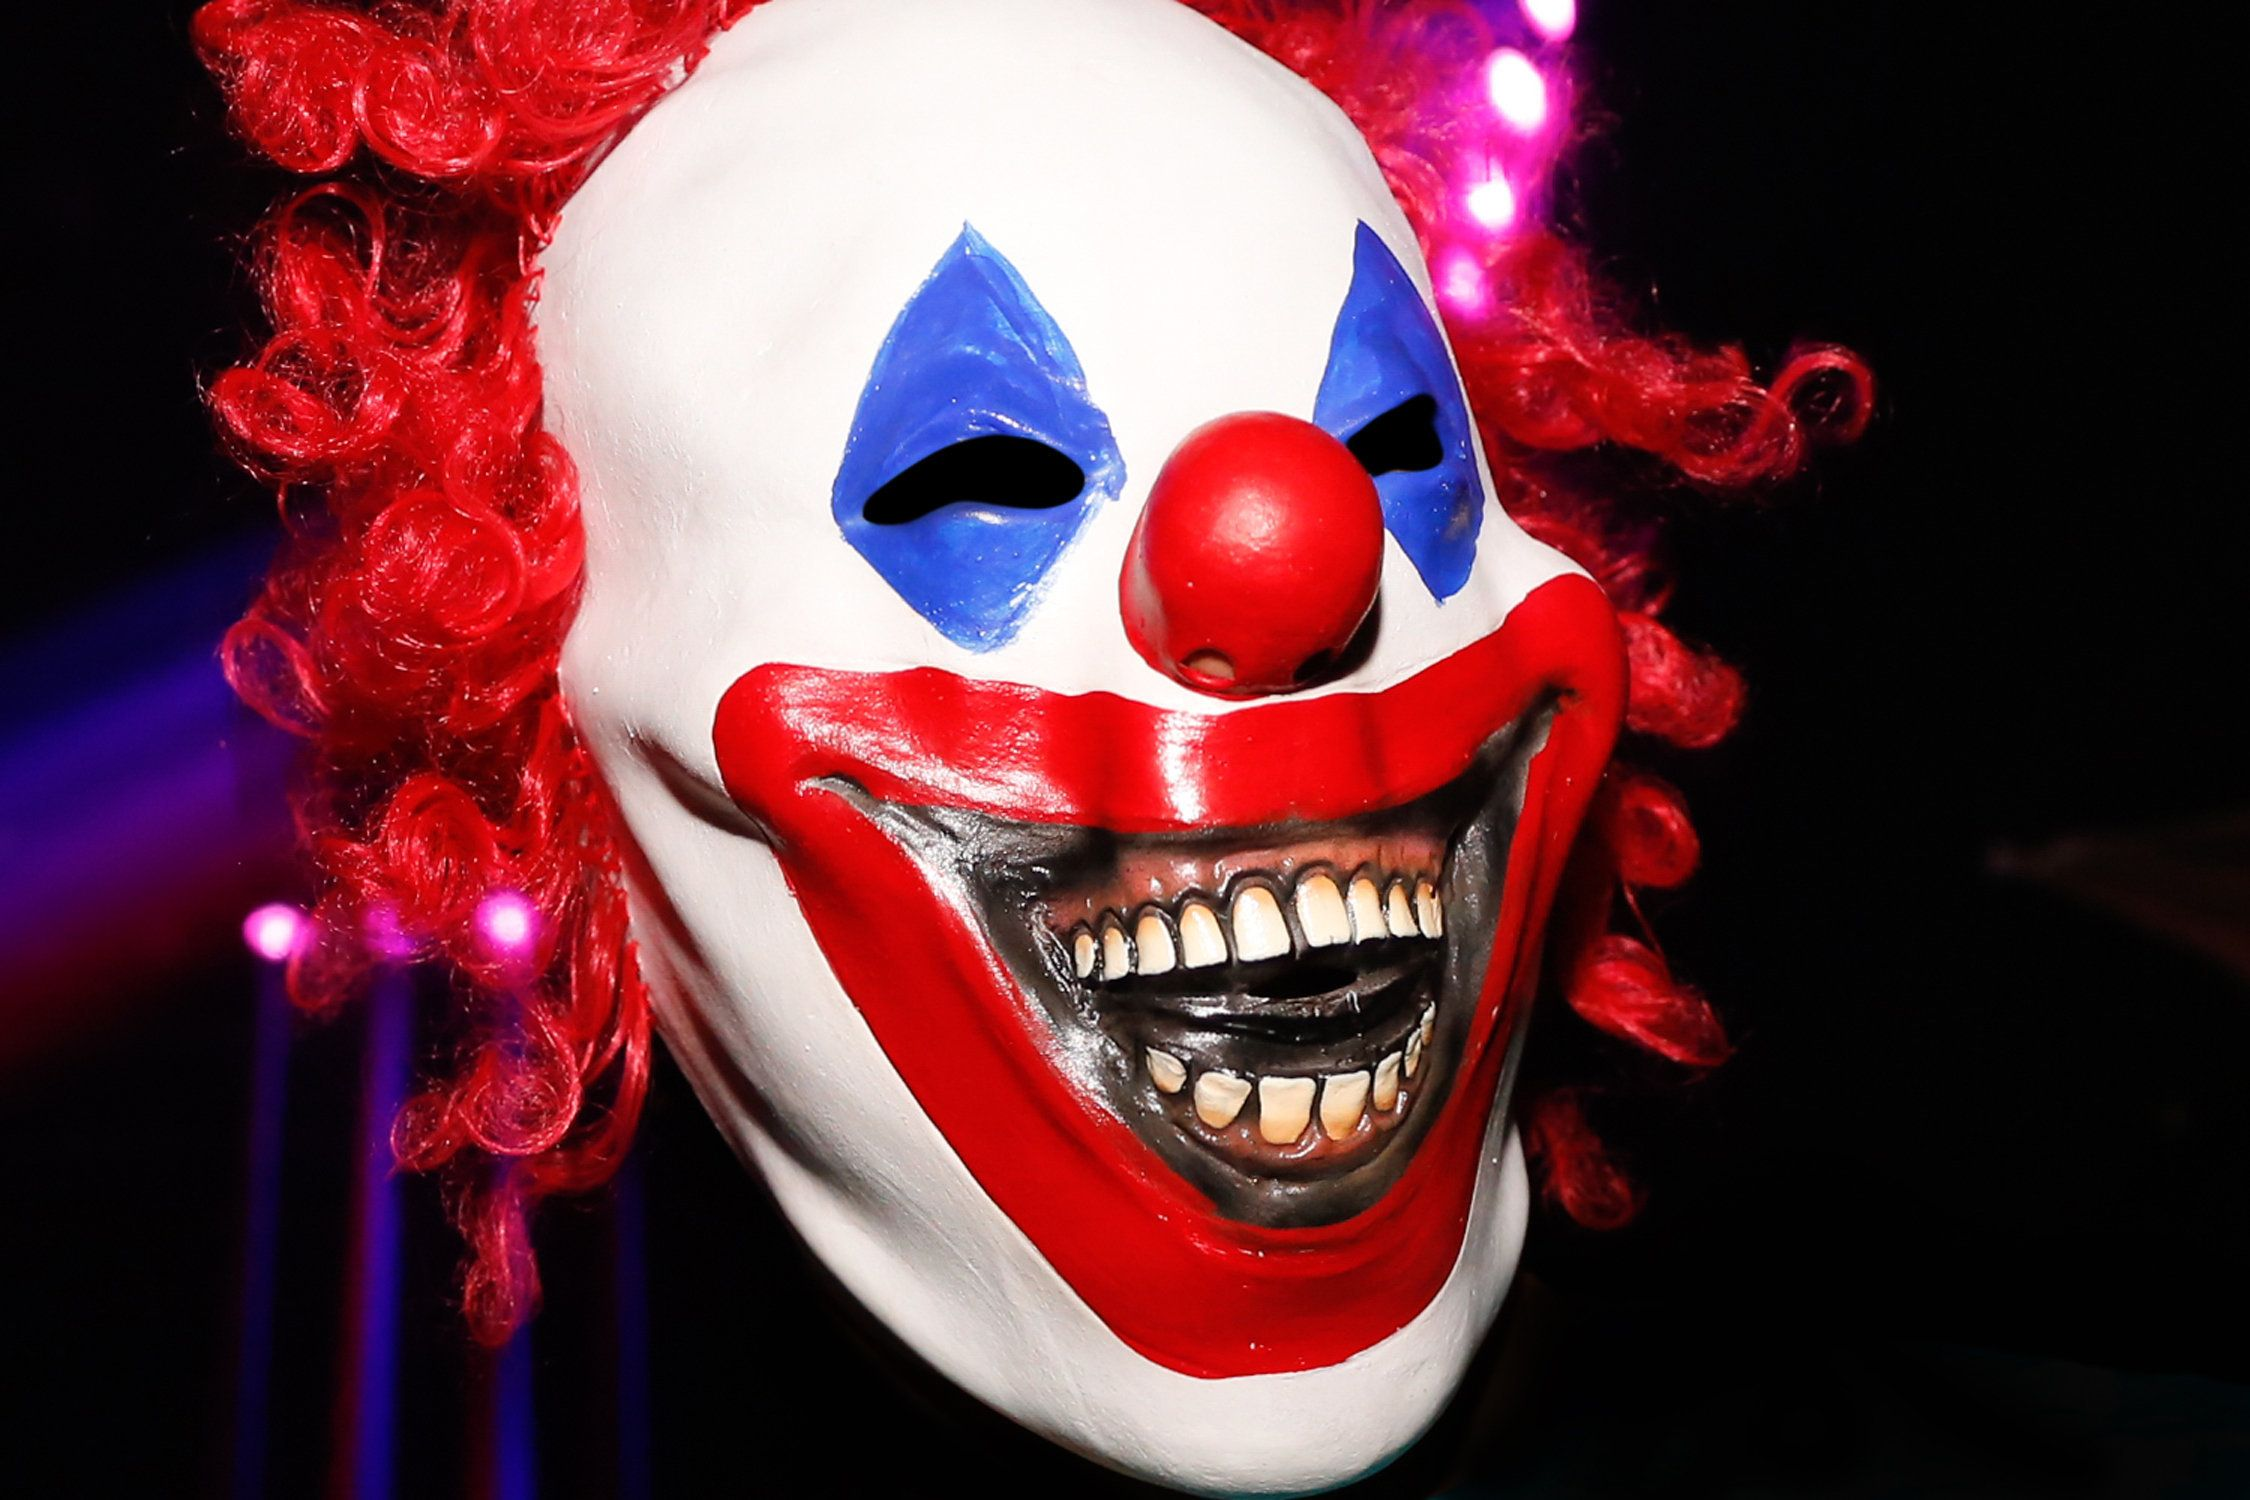 Pennsylvania police say they are looking for a clown who allegedly tried to get a 9-year-old girl to follow him by offering h